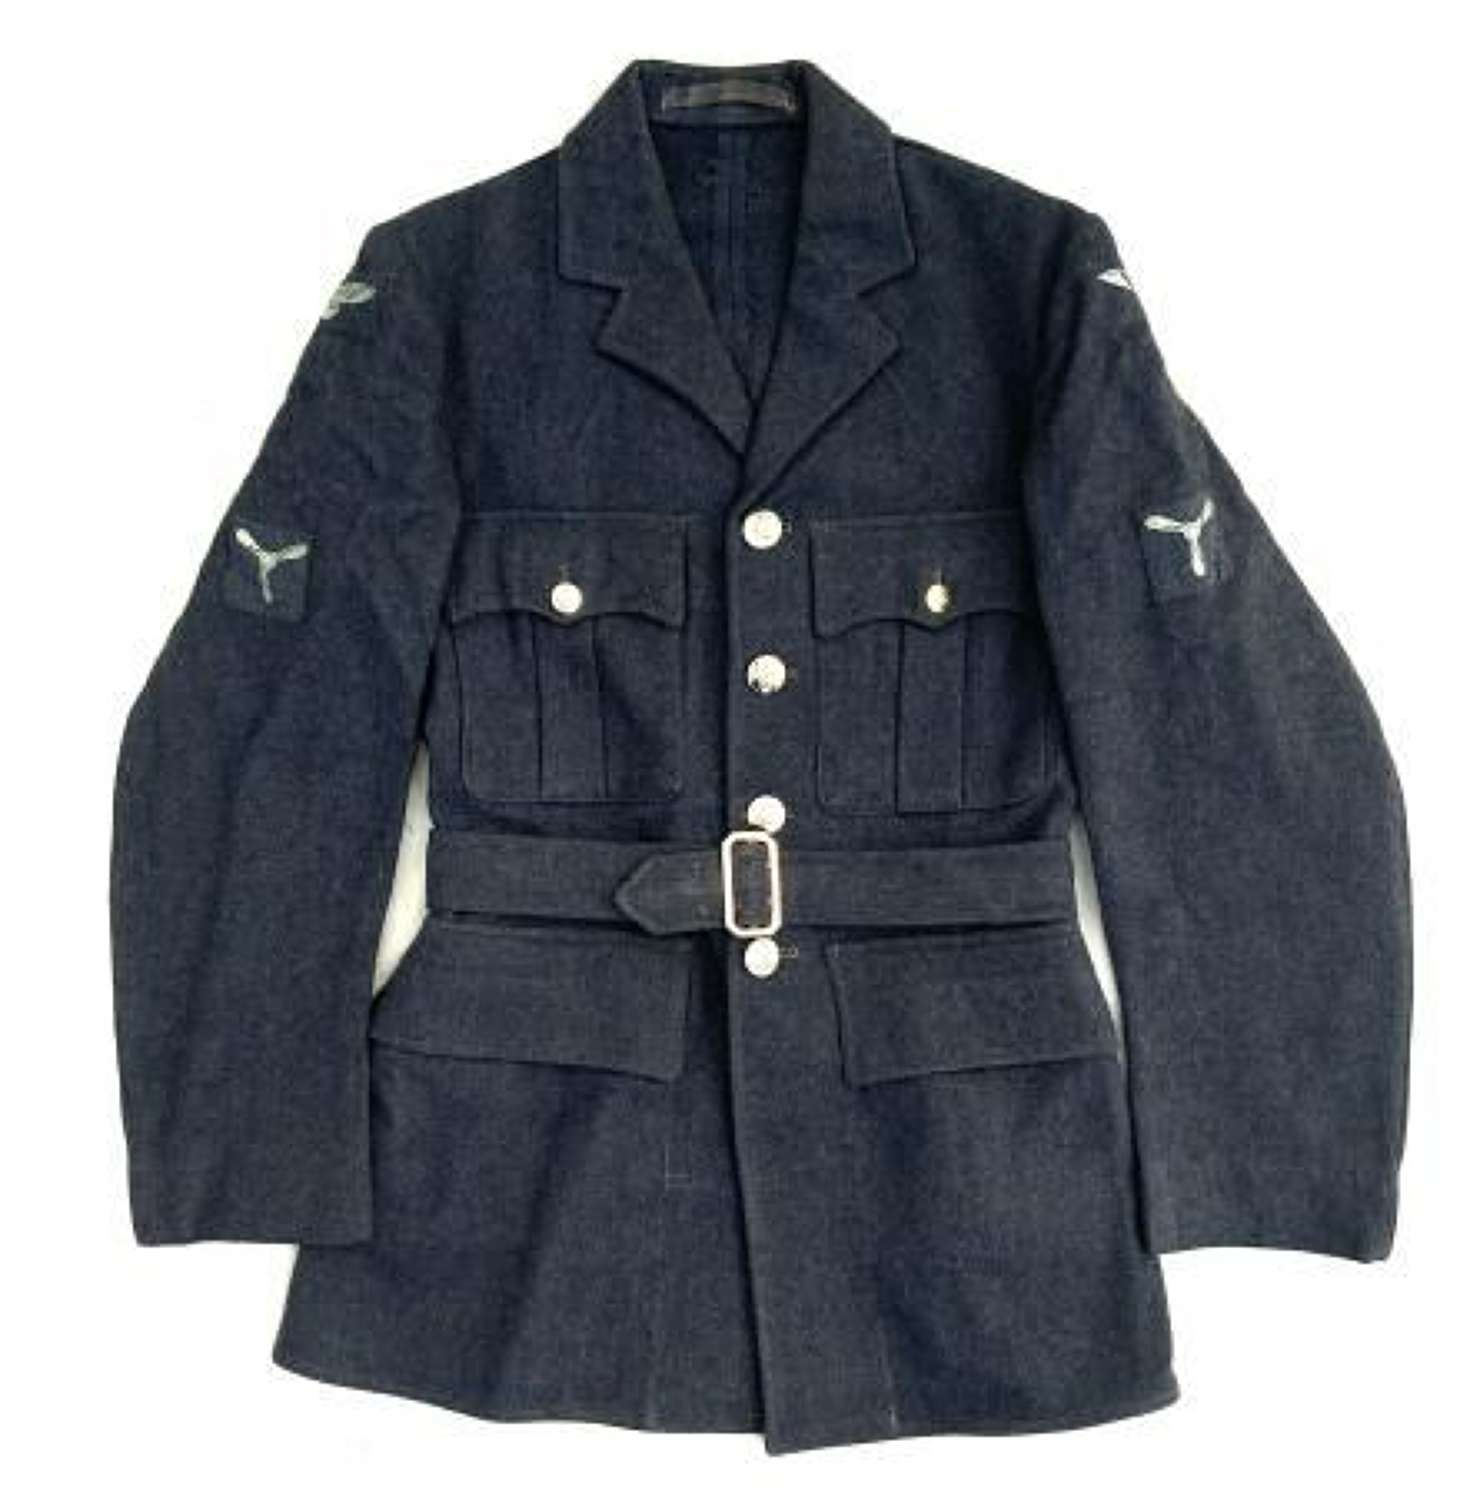 Original 1951 Dated RAF Ordinary Airman's Tunic - Size 13